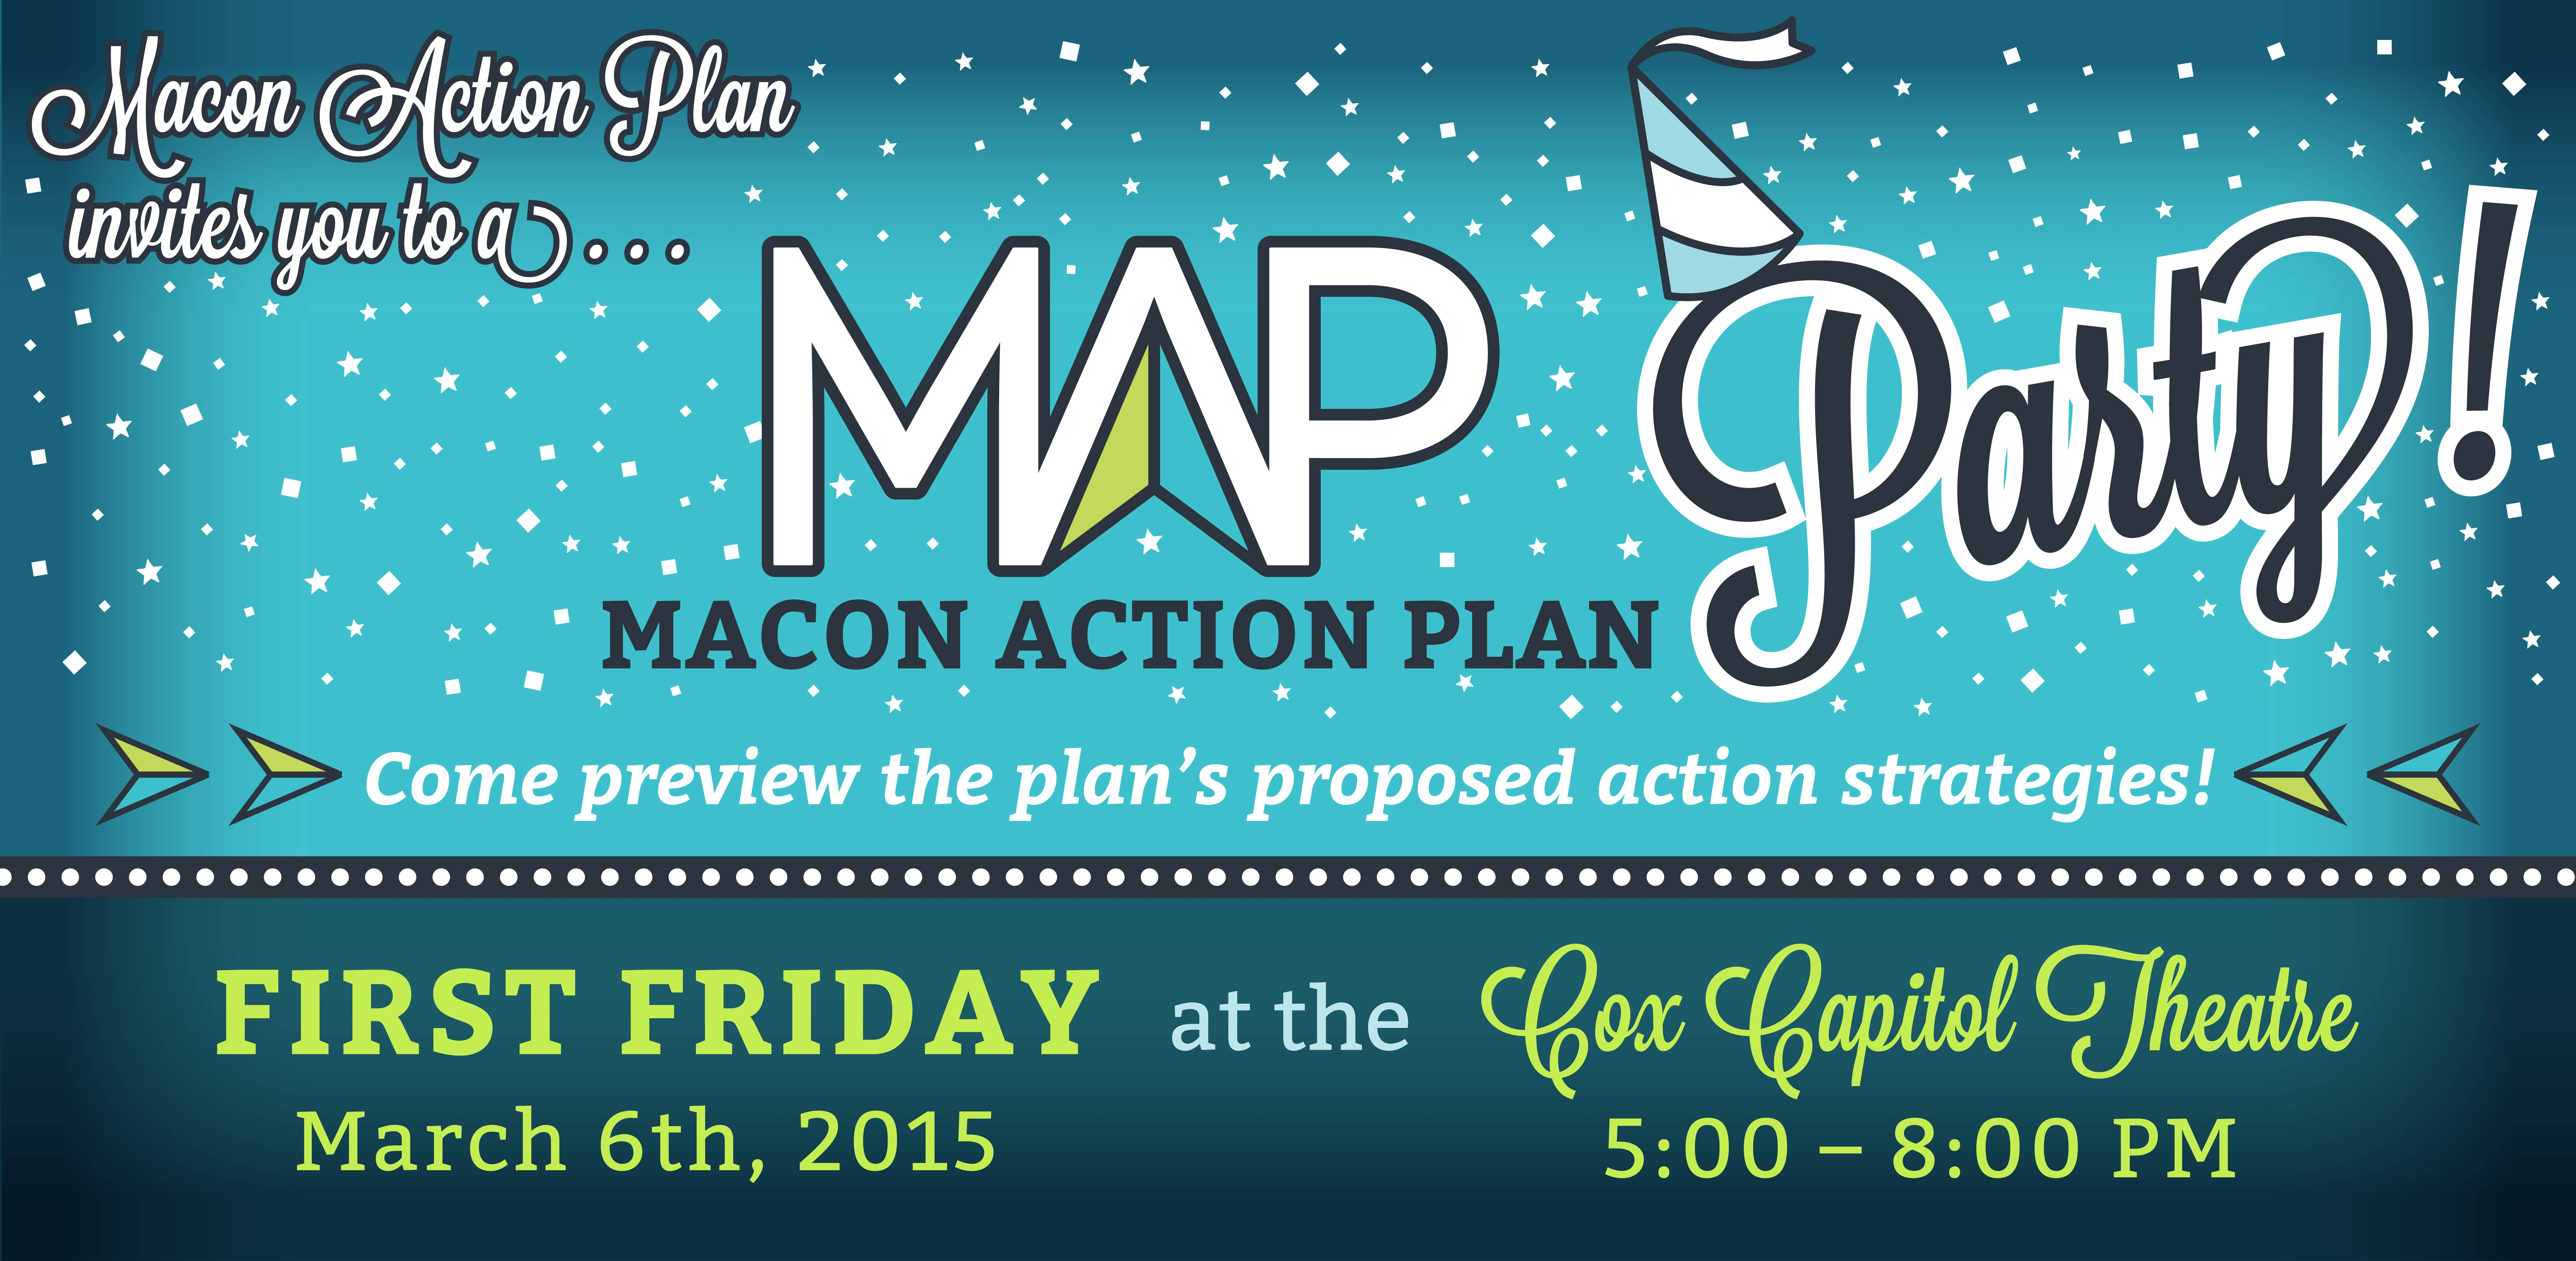 Macon Action Plan Party